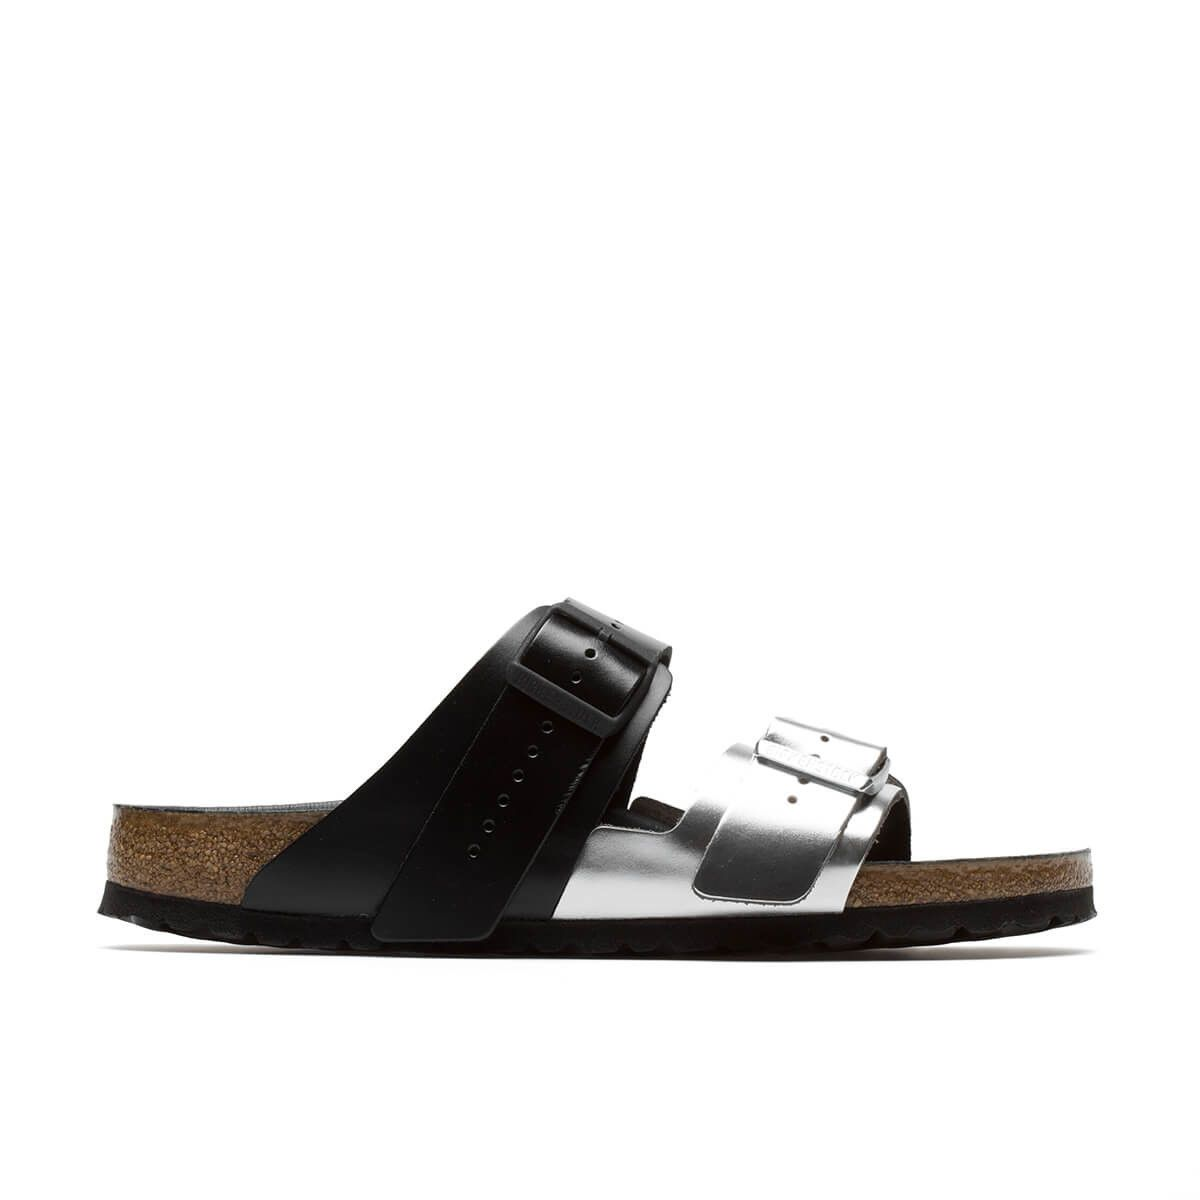 998d5f8738d Arizona Combo sandals from the Rick Owens x Birkenstock collection in black  and silver